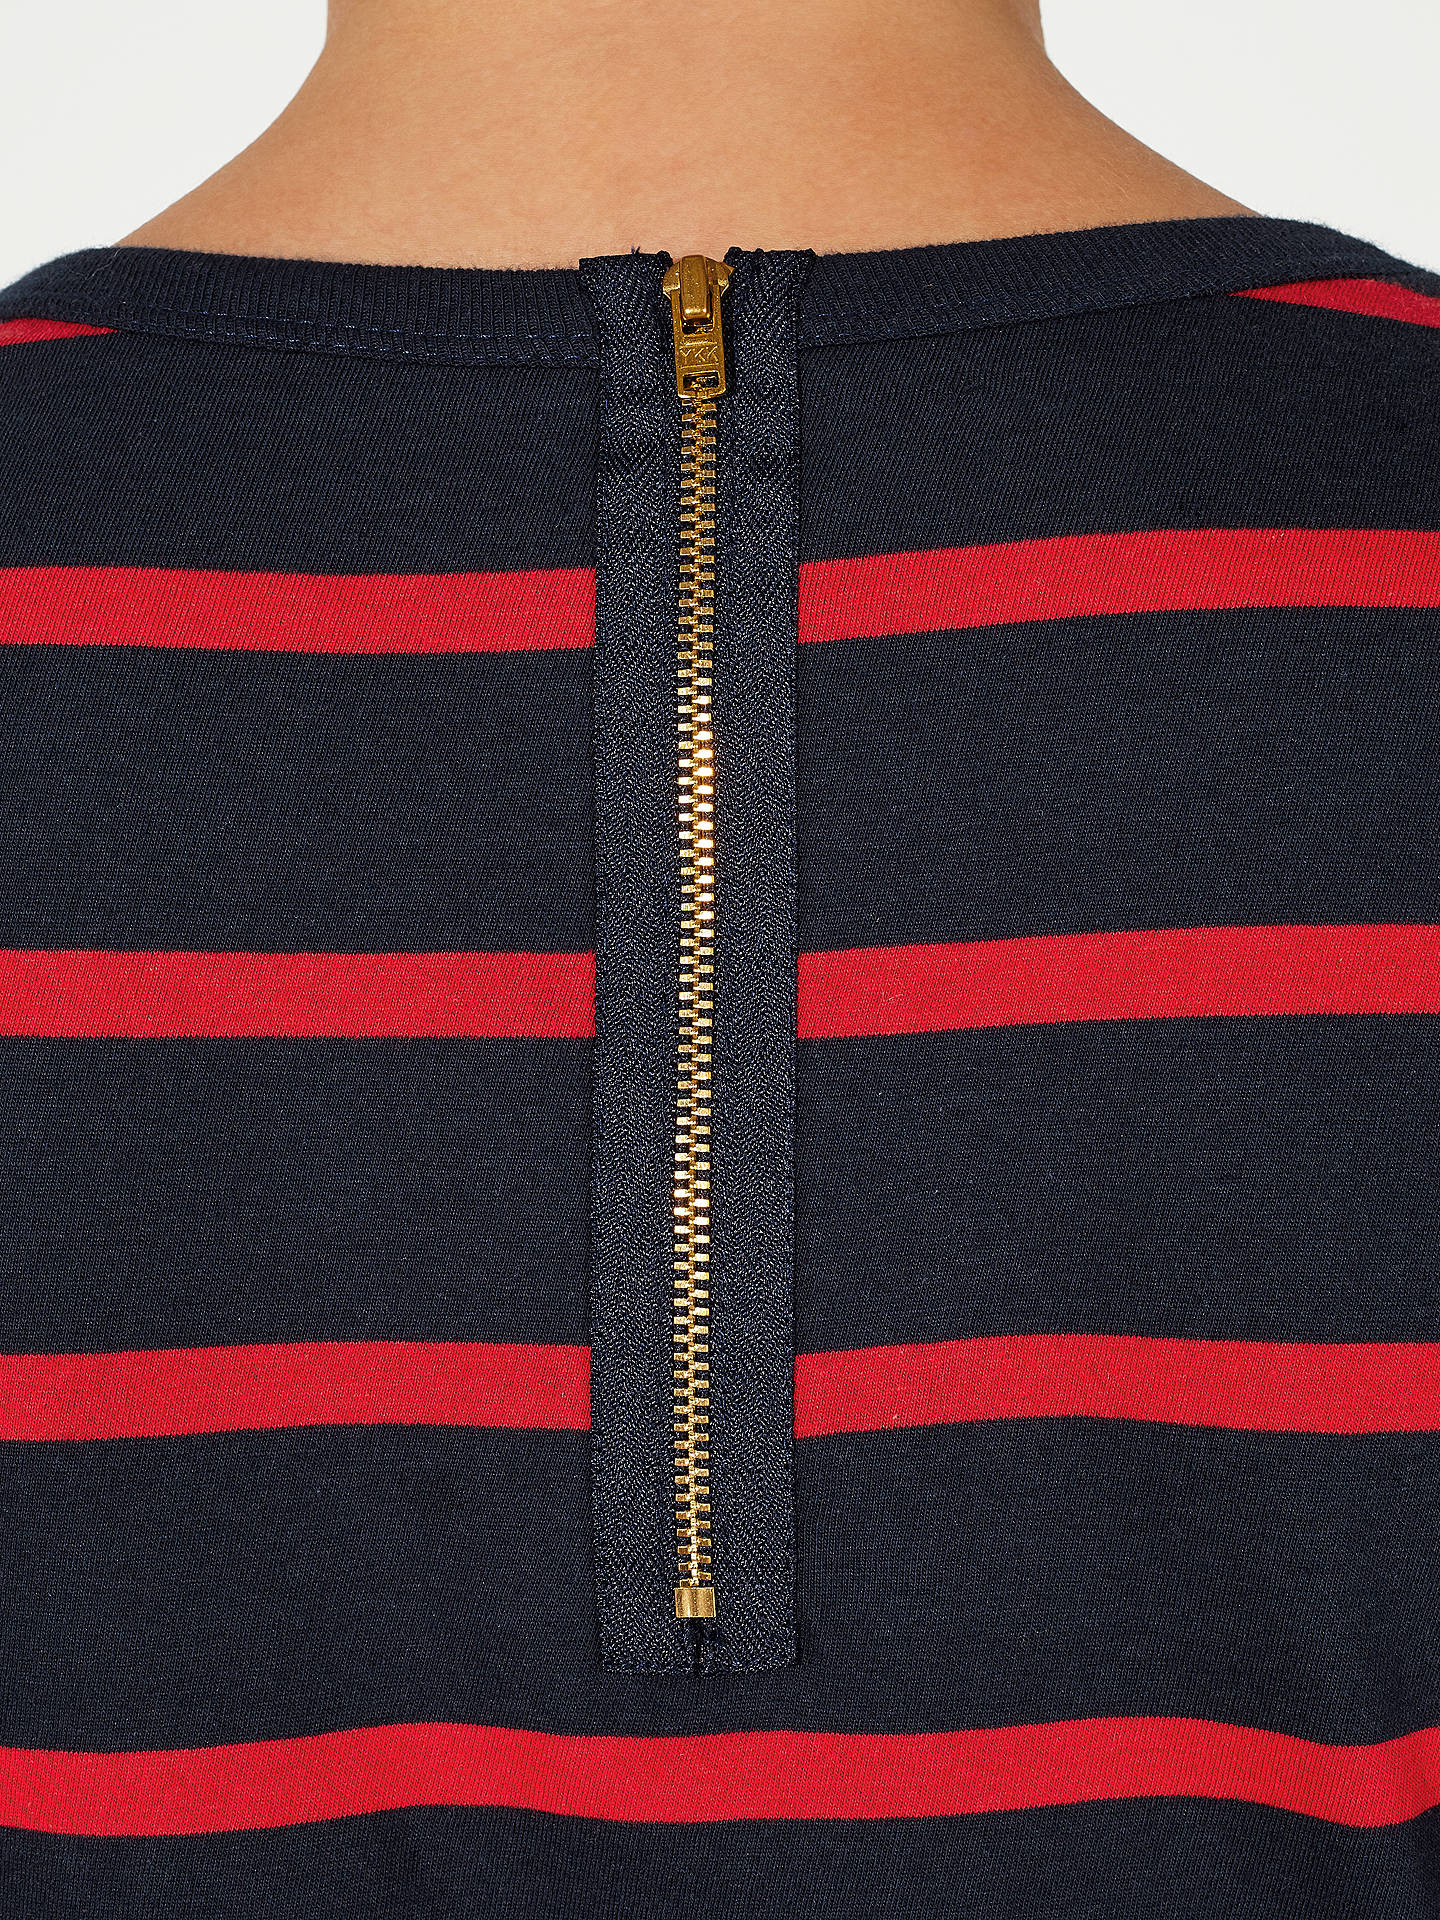 Buy John Lewis Zip Back Breton Stripe Top, Navy/Red, 8 Online at johnlewis.com